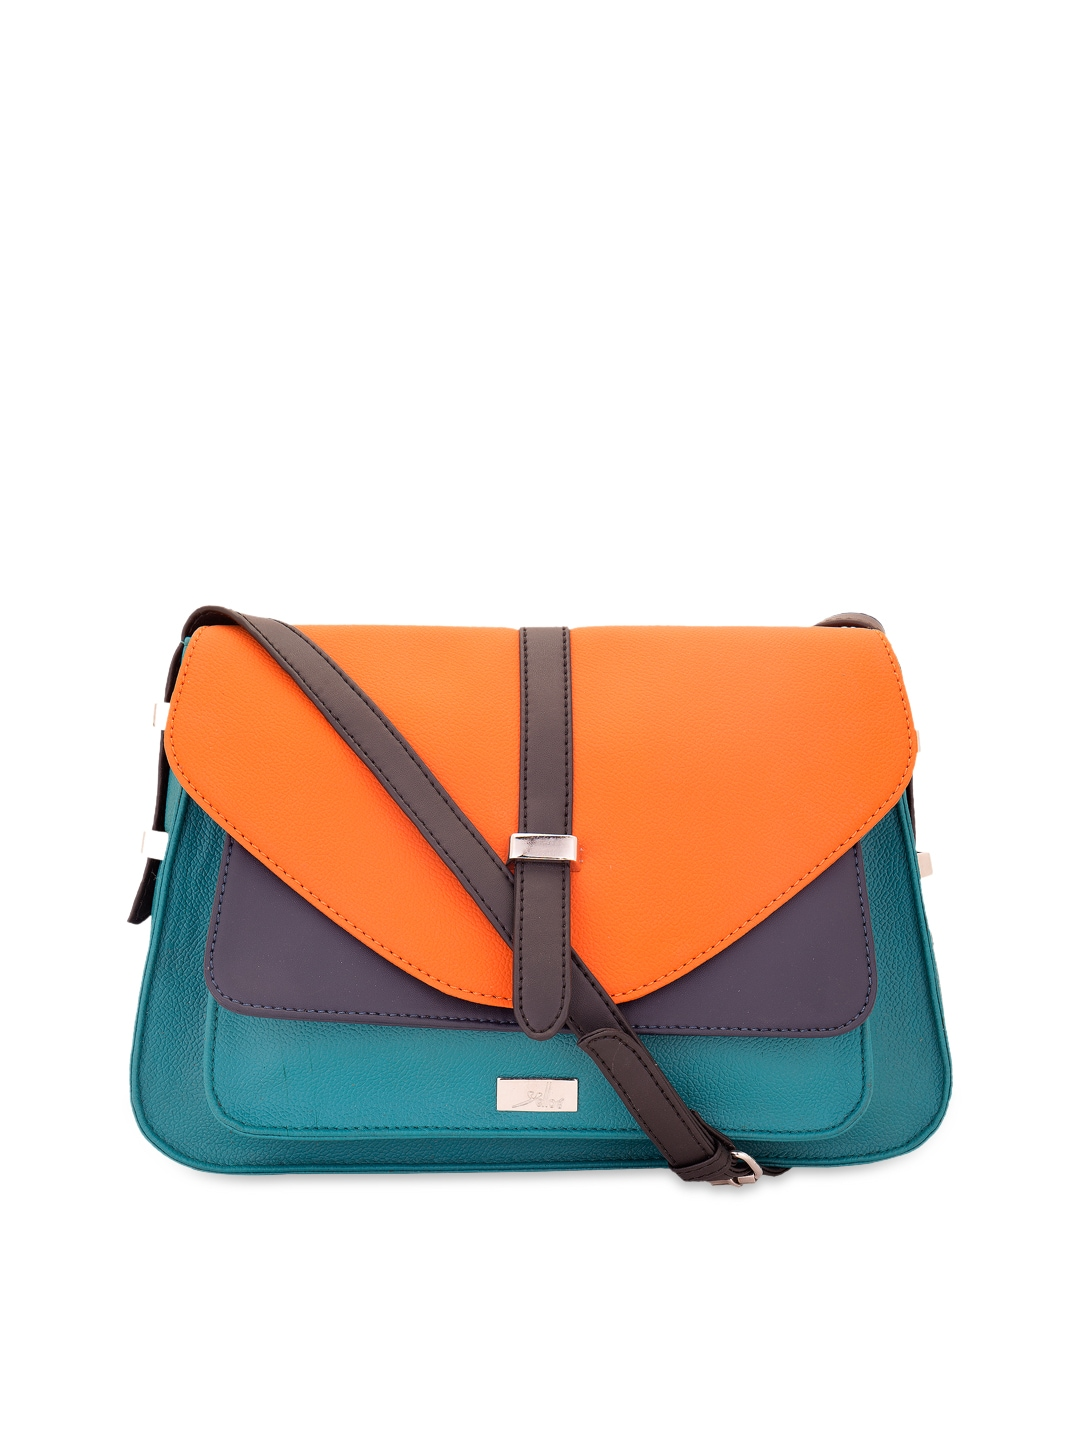 Sling Bags - Buy Sling Bags for Women & Men Online At Myntra